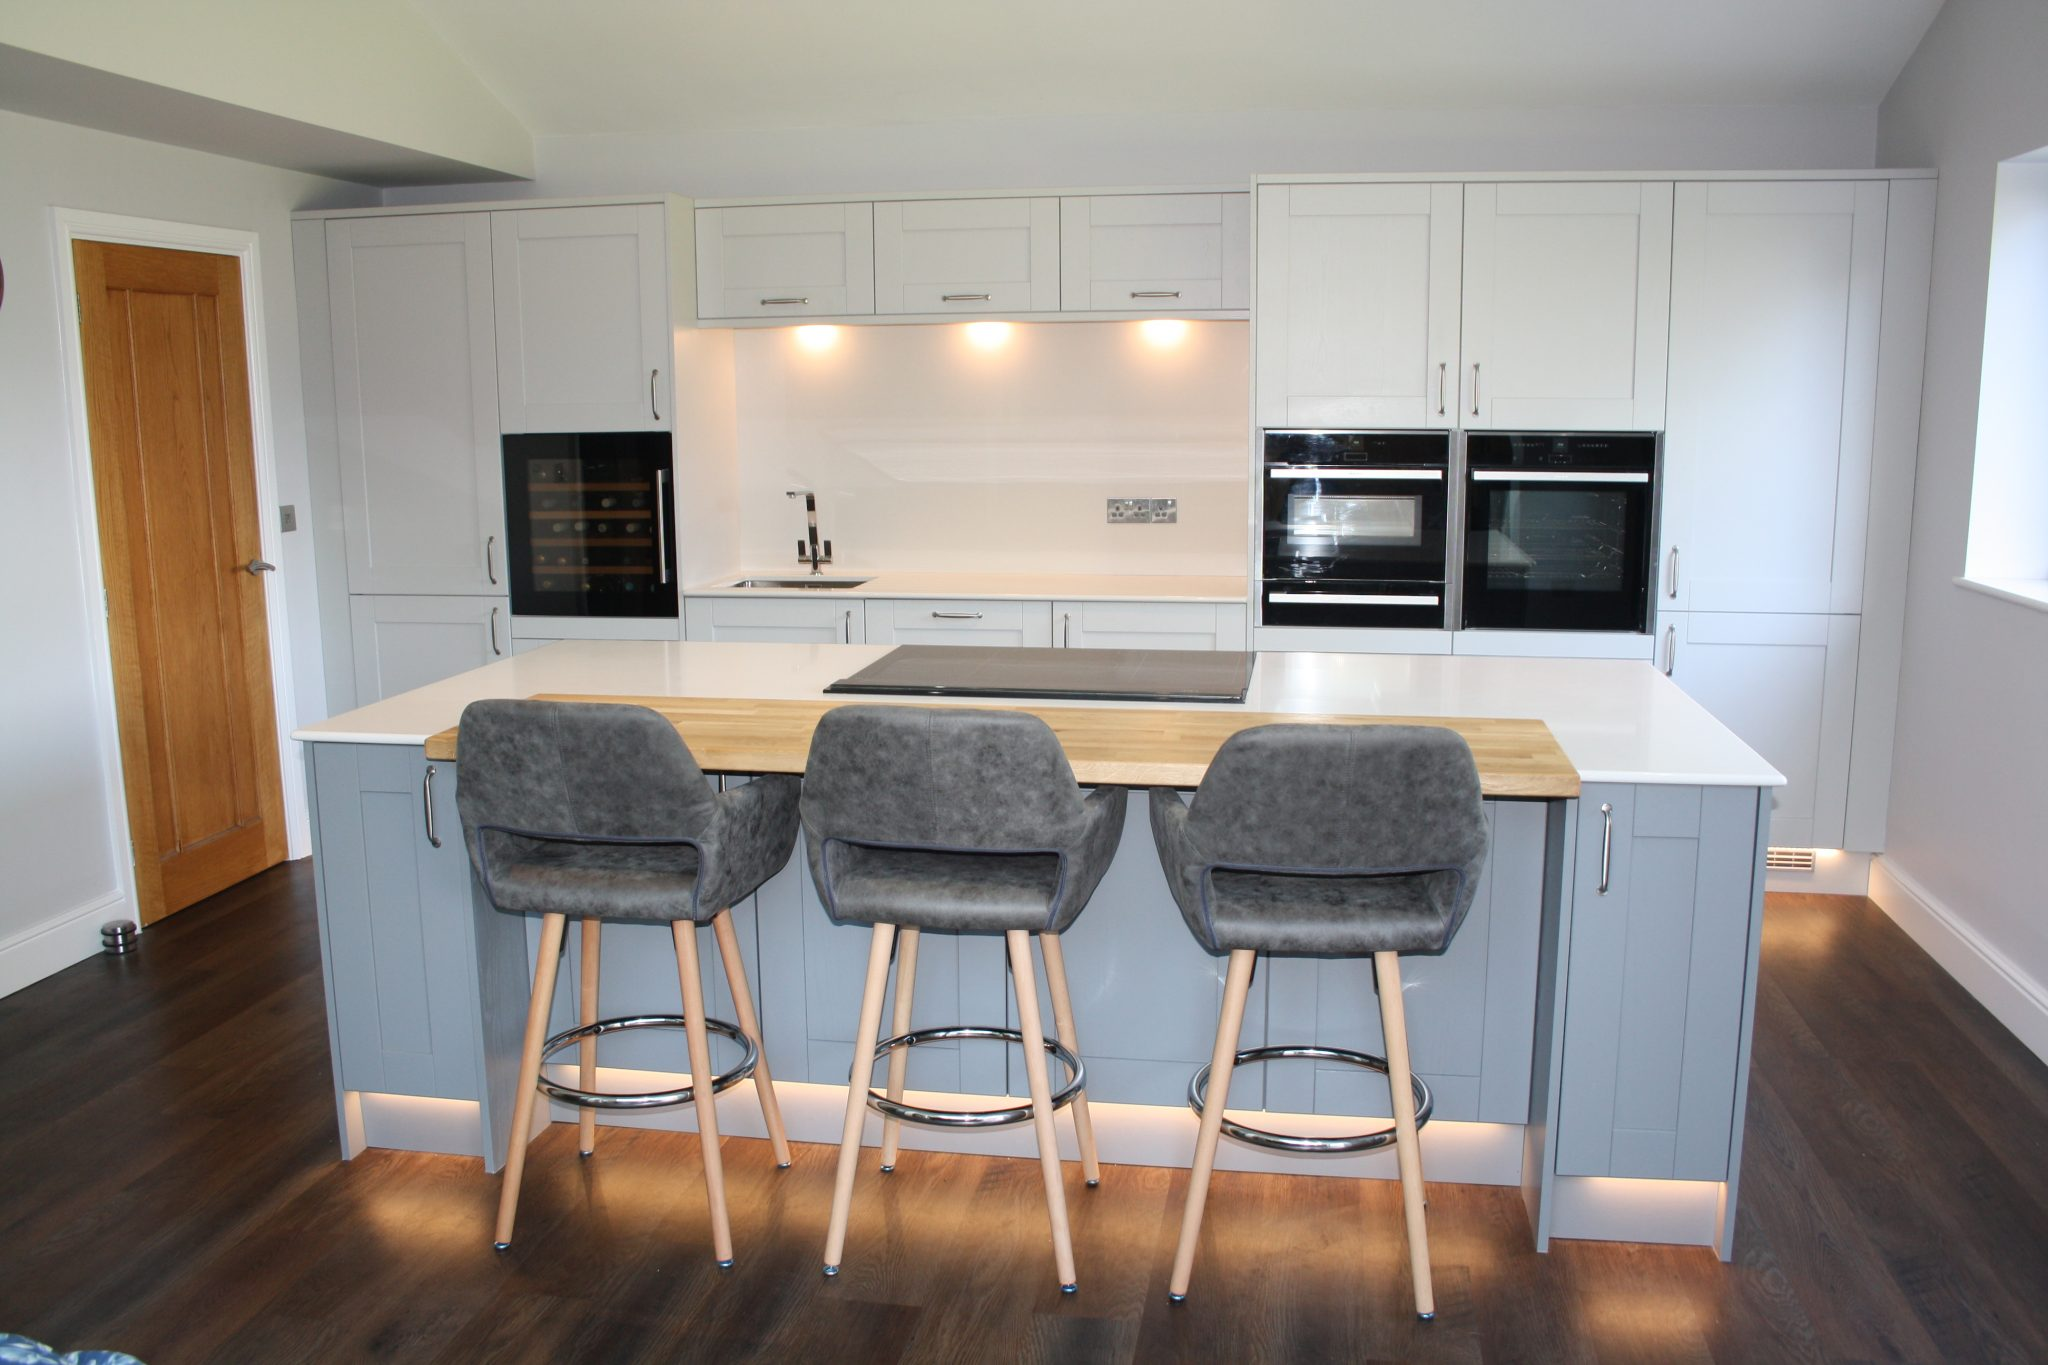 5 Reasons To Integrate Appliances Into Your Fitted Kitchen